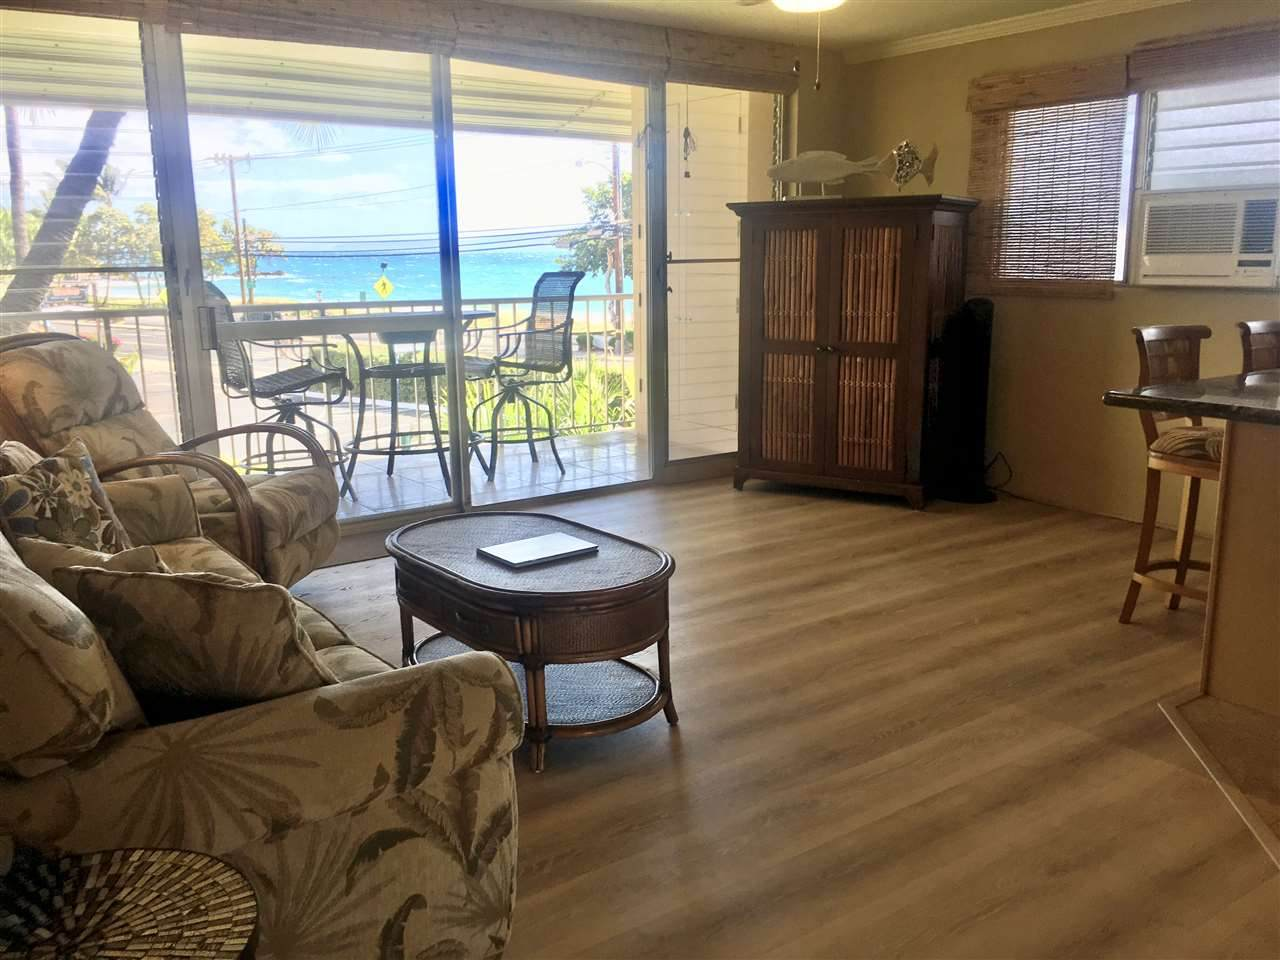 2495 Kihei Rd - Photo 1